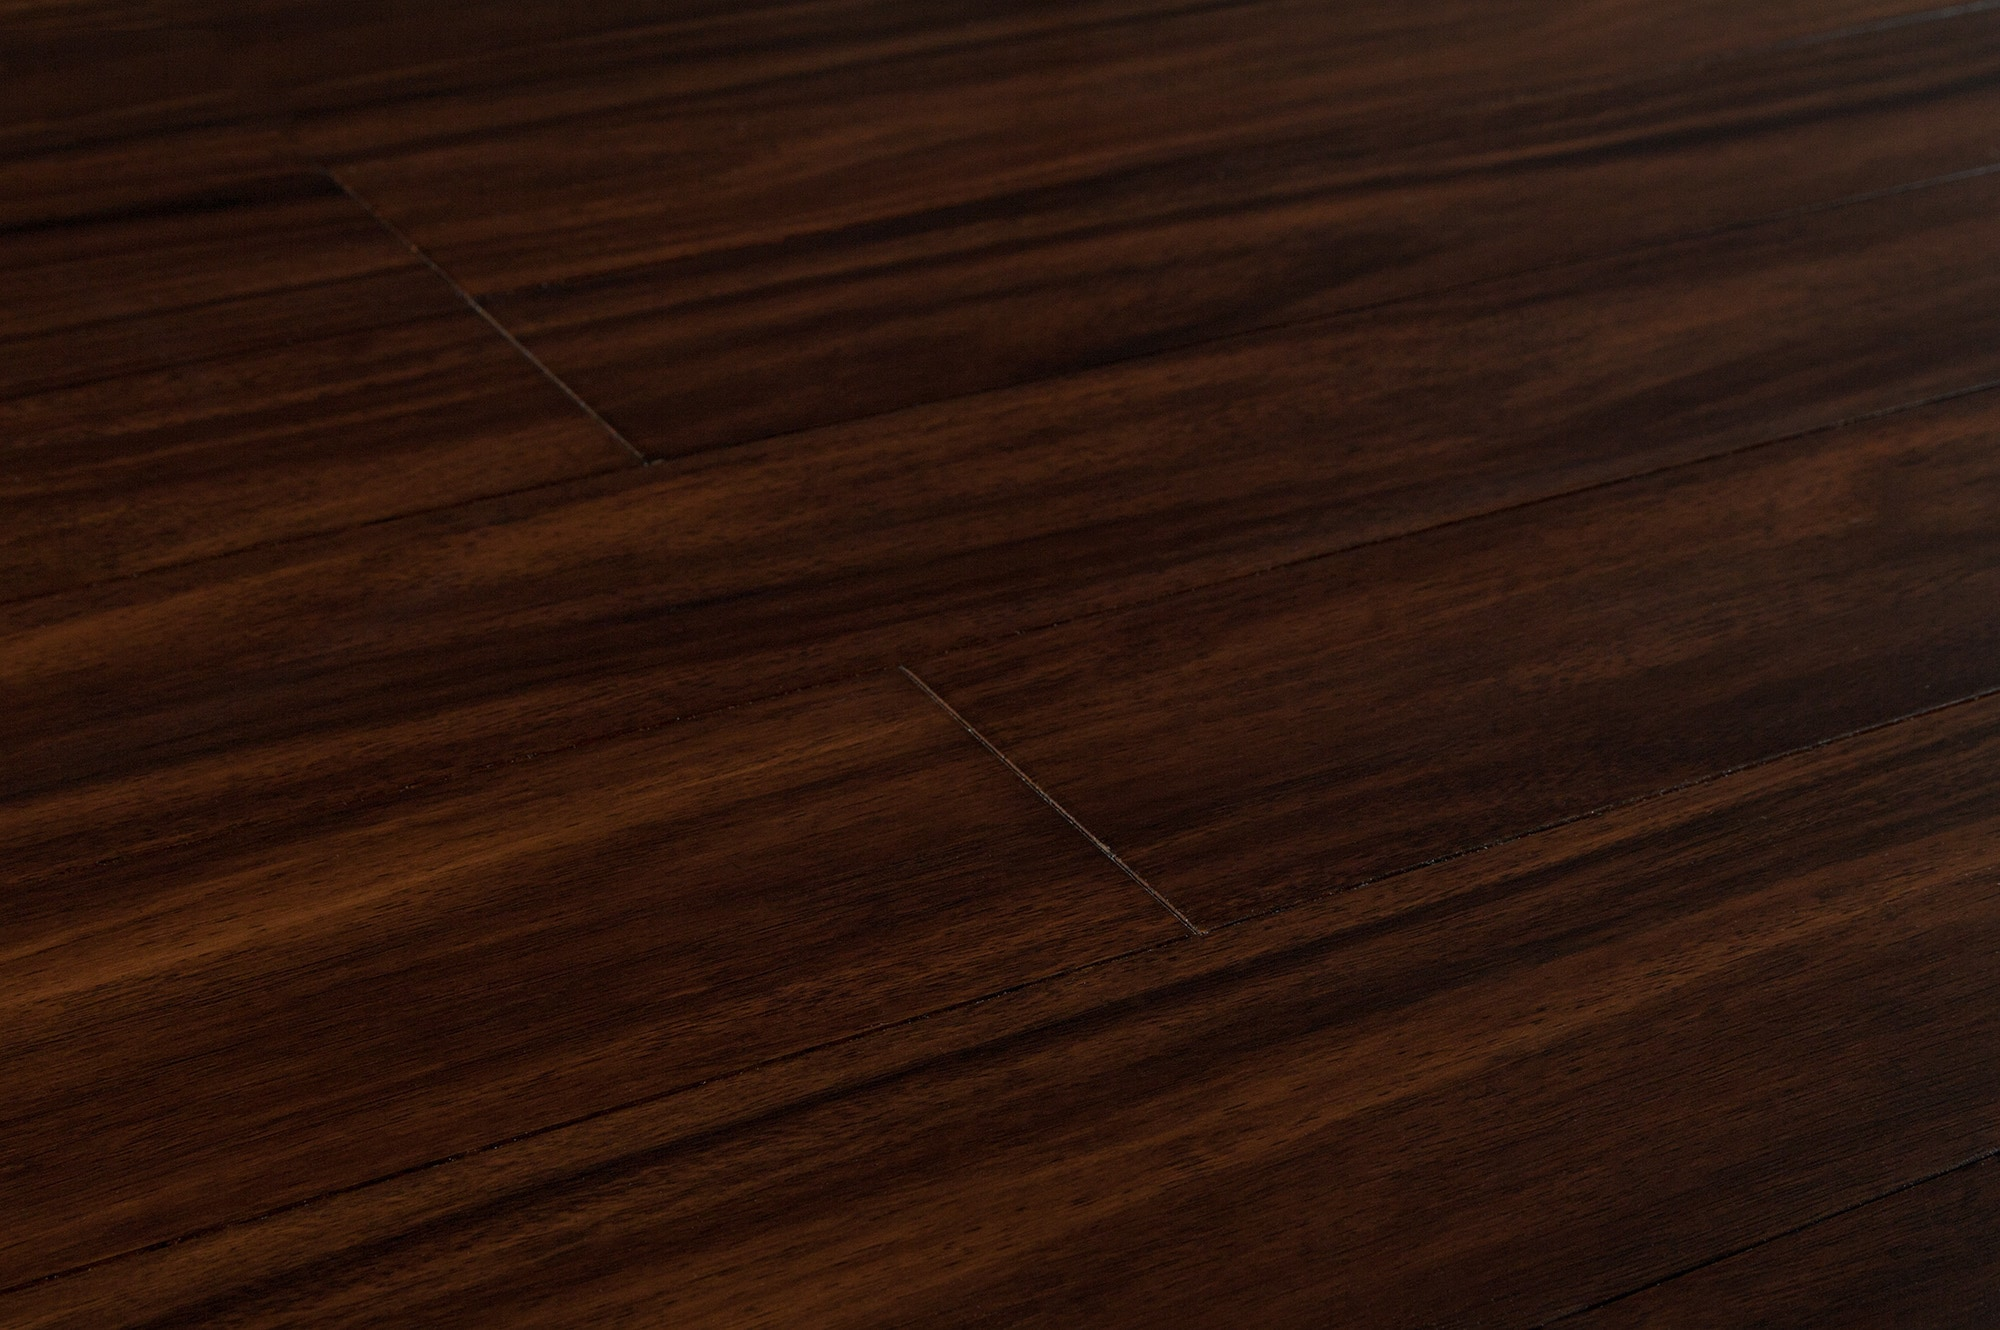 Yanchi 12mm T&G Solid Strand Woven Bamboo Flooring Acacia 3 3 4